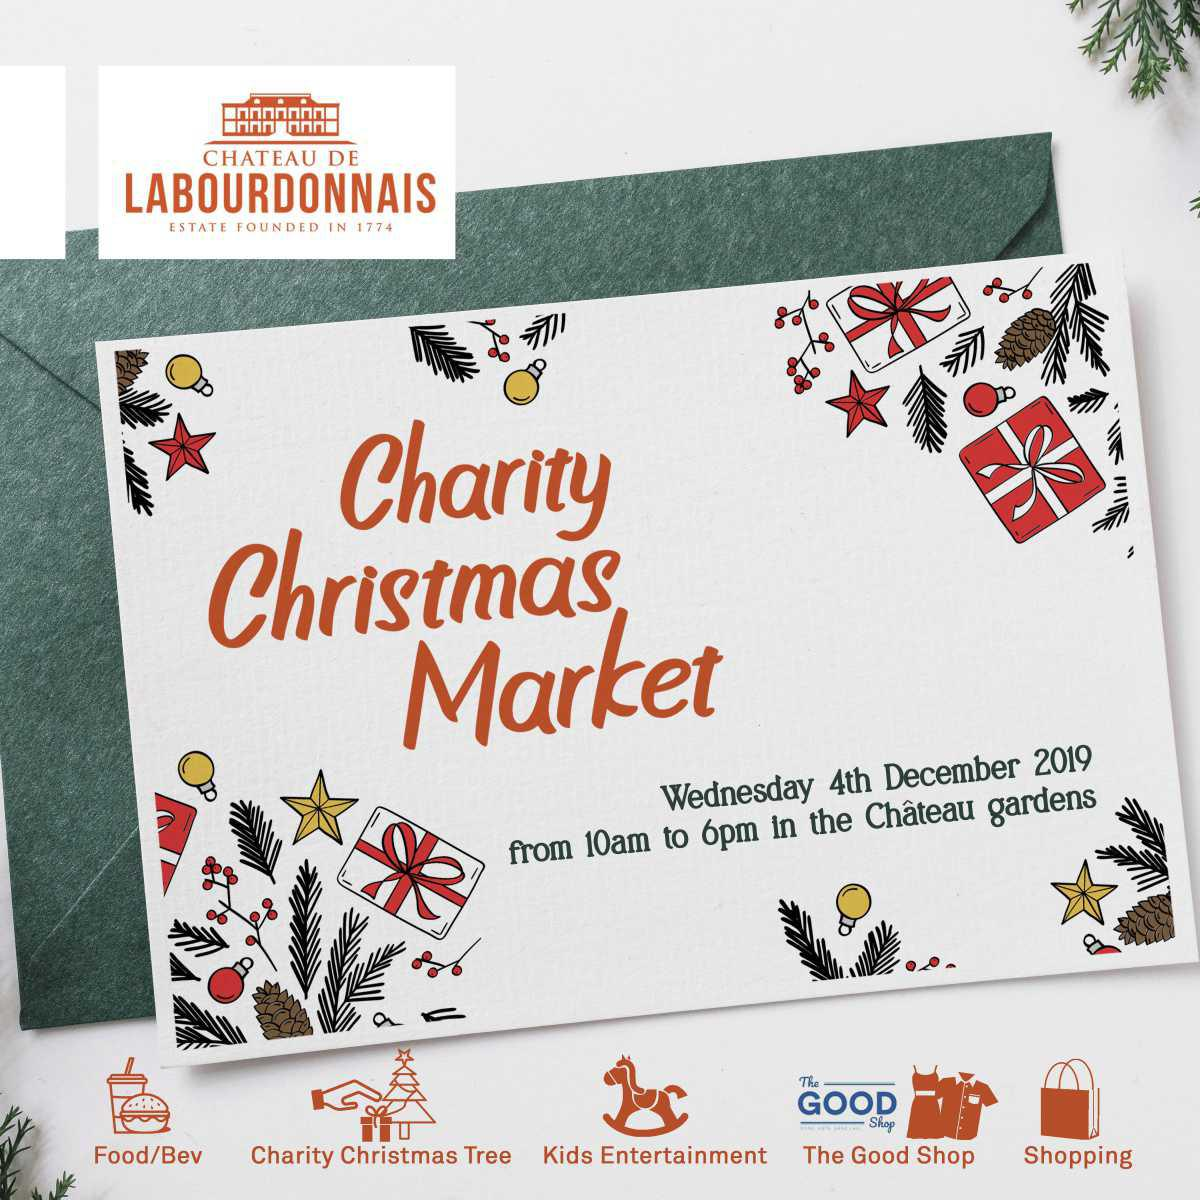 This Christmas, Support A Great Cause with Domaine de Labourdonnais!